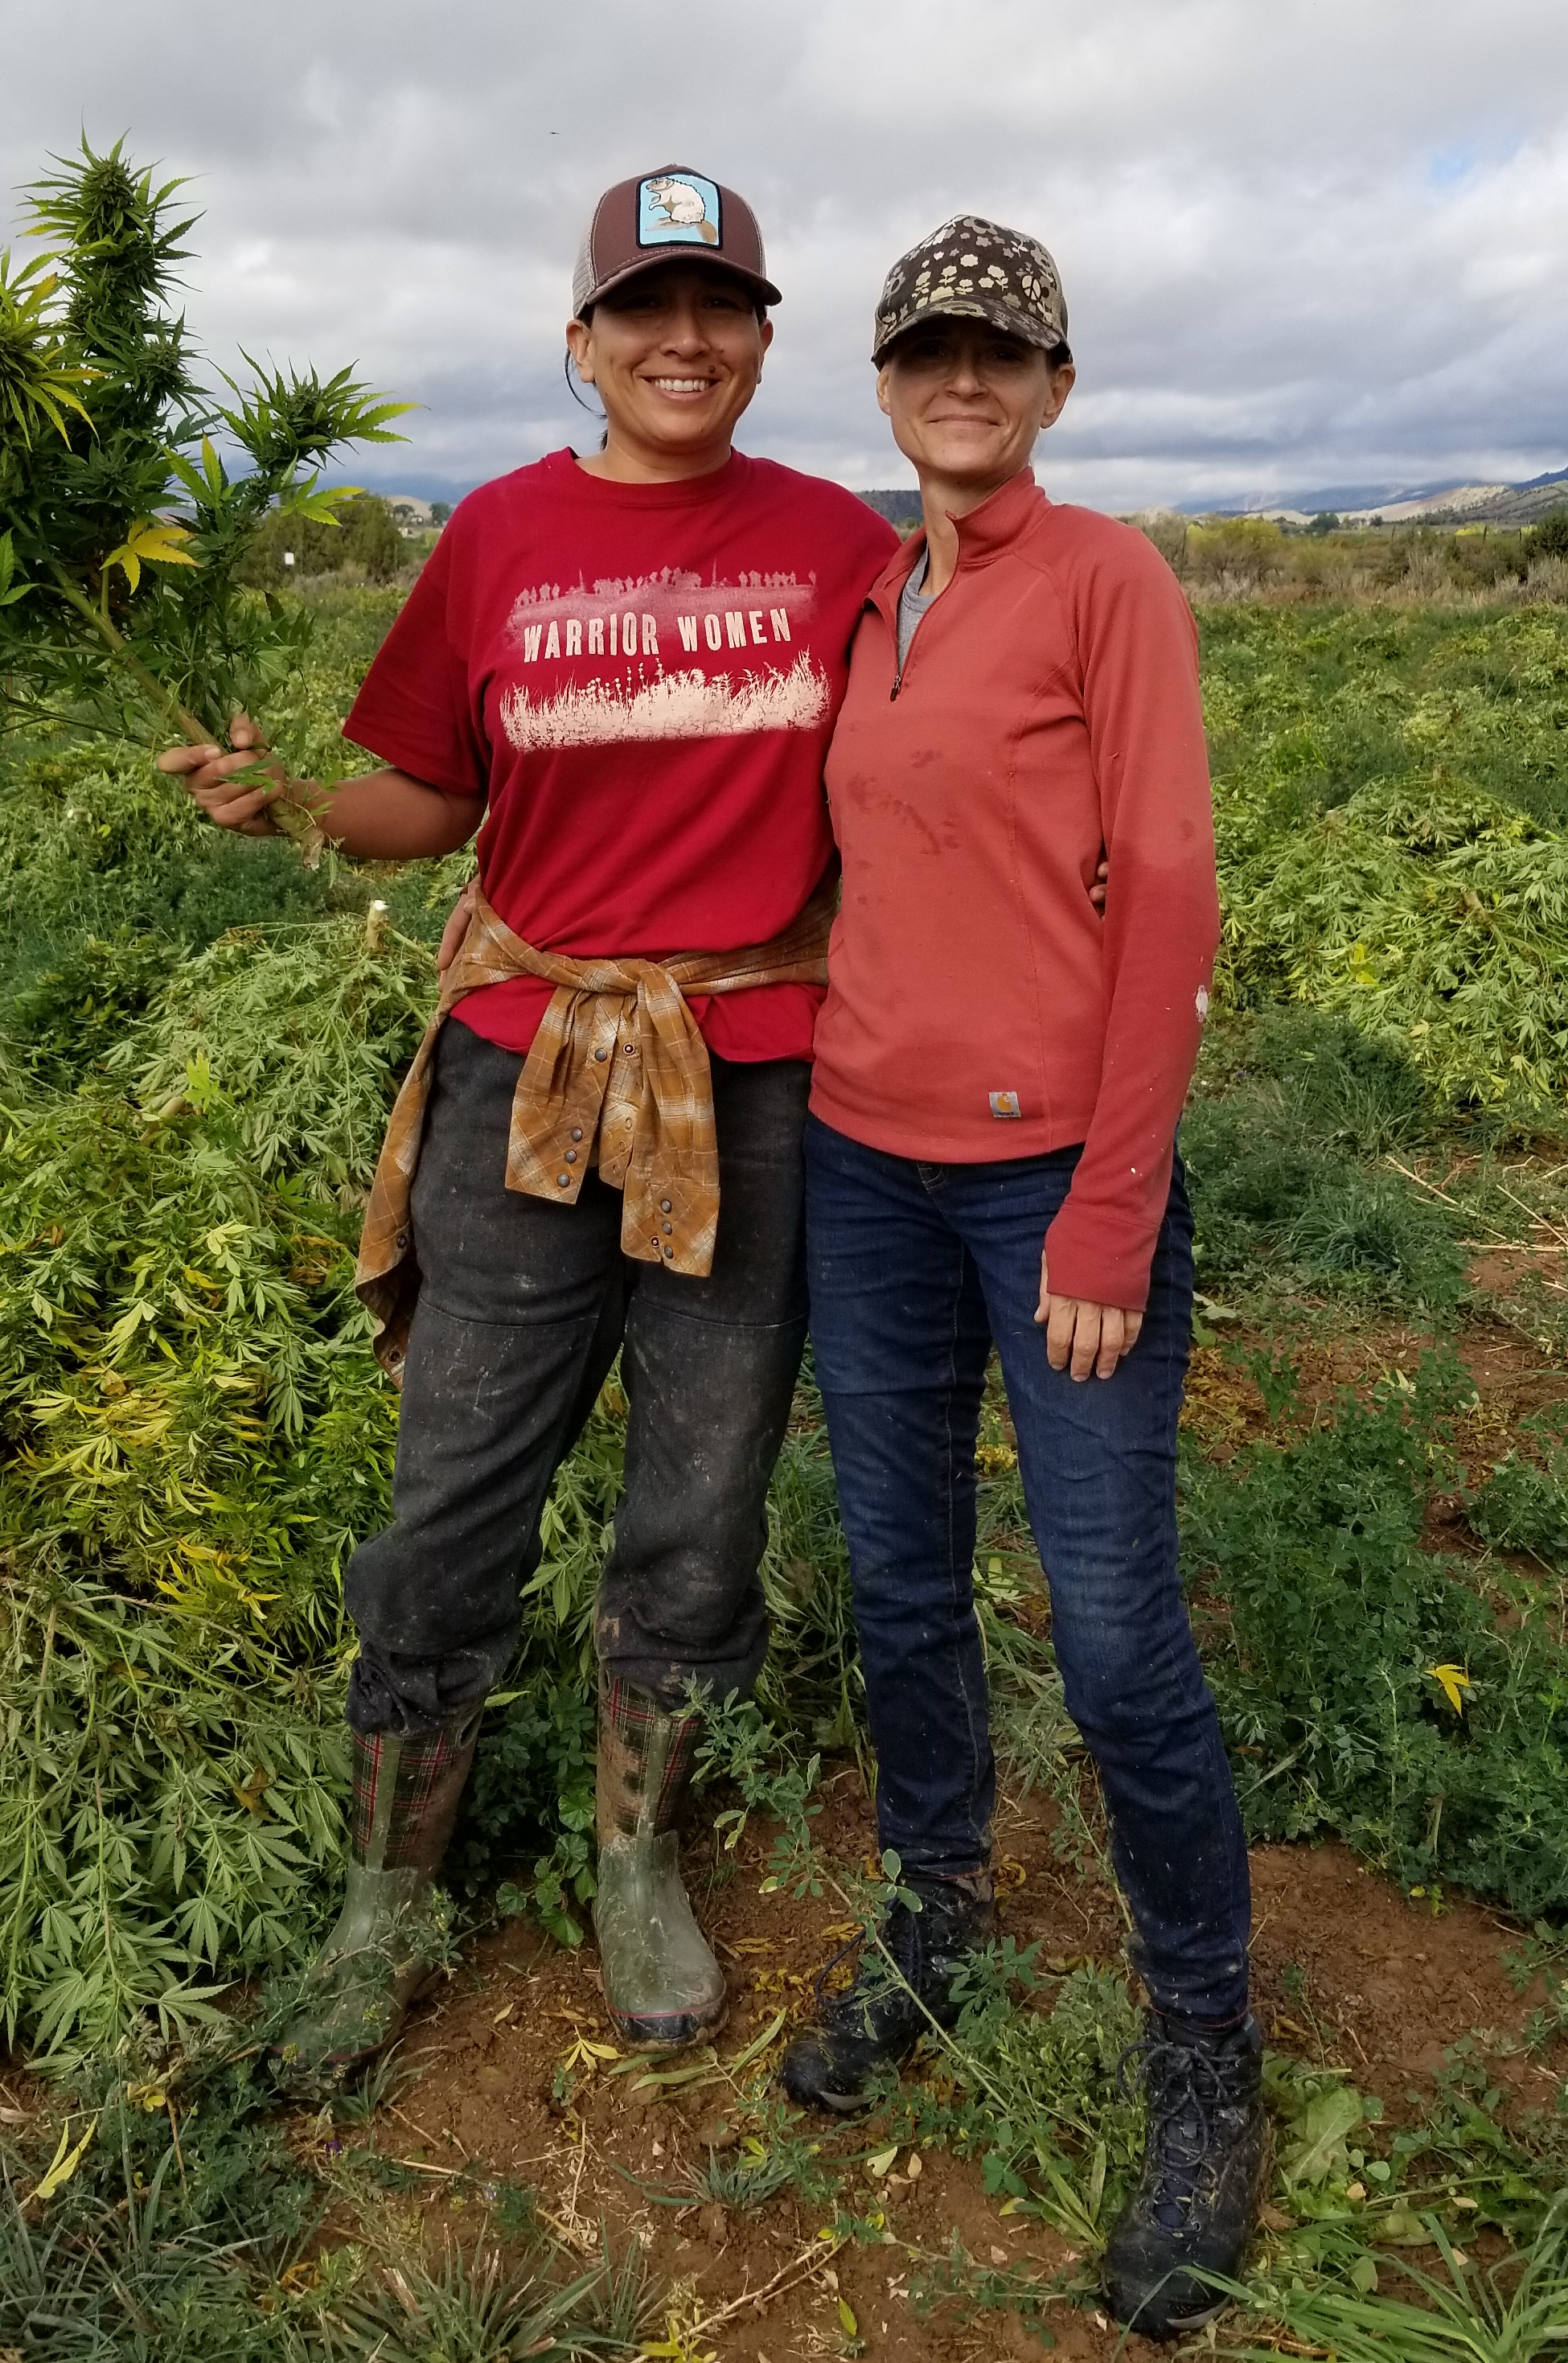 Dionne Holmquist - Founder of Hemp Quest Ventures, Owner of Hemp Spirit Extracts, & Slow Hemp Associate  Chris Holmquist - Owner of About It & Slow Hemp Associate  Photo credit Hemp Quest Ventures: 2018 Hemp harvest in Colorado.